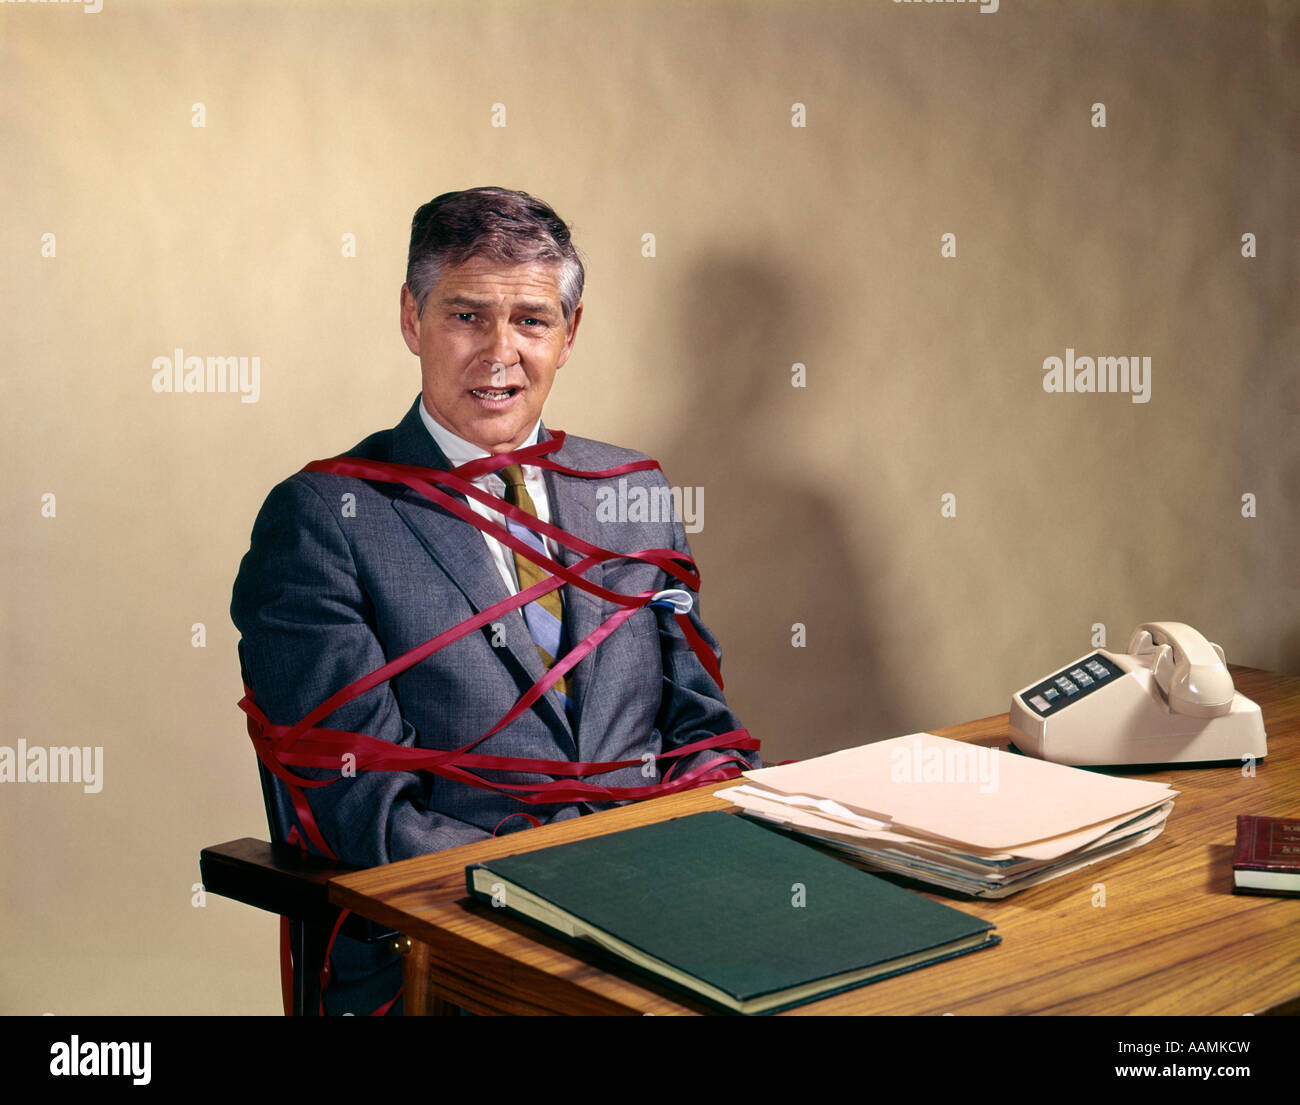 1970s MIDDLE AGED BUSINESS MAN AT DESK TIED UP TANGLED IN RED TAPE OFFICE SNAFU BUREAUCRACY WASTEFUL RETRO VINTAGE - Stock Image